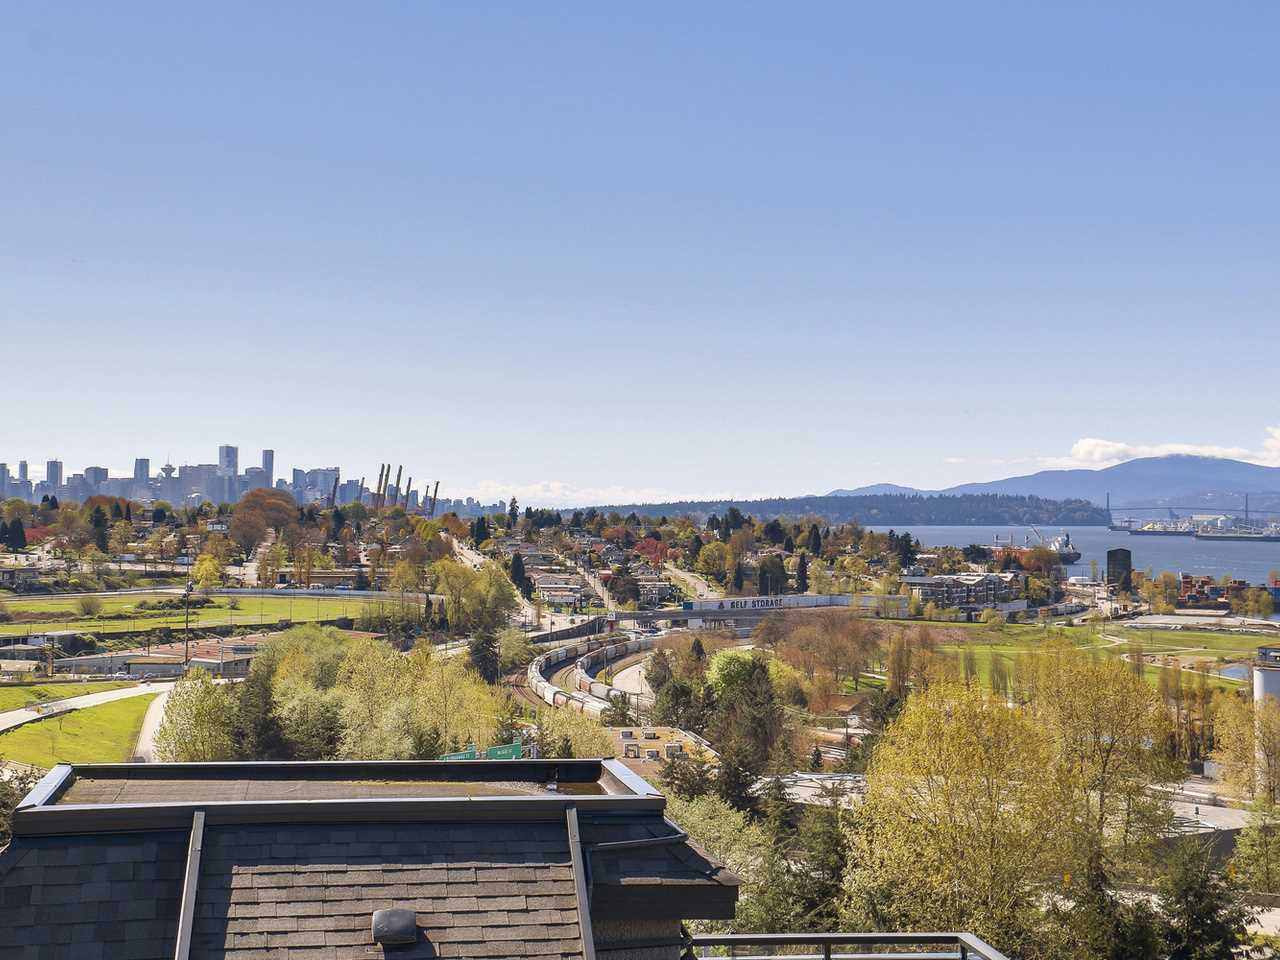 Photo 16: 3539 ETON Street in Vancouver: Hastings East House for sale (Vancouver East)  : MLS® # R2159493